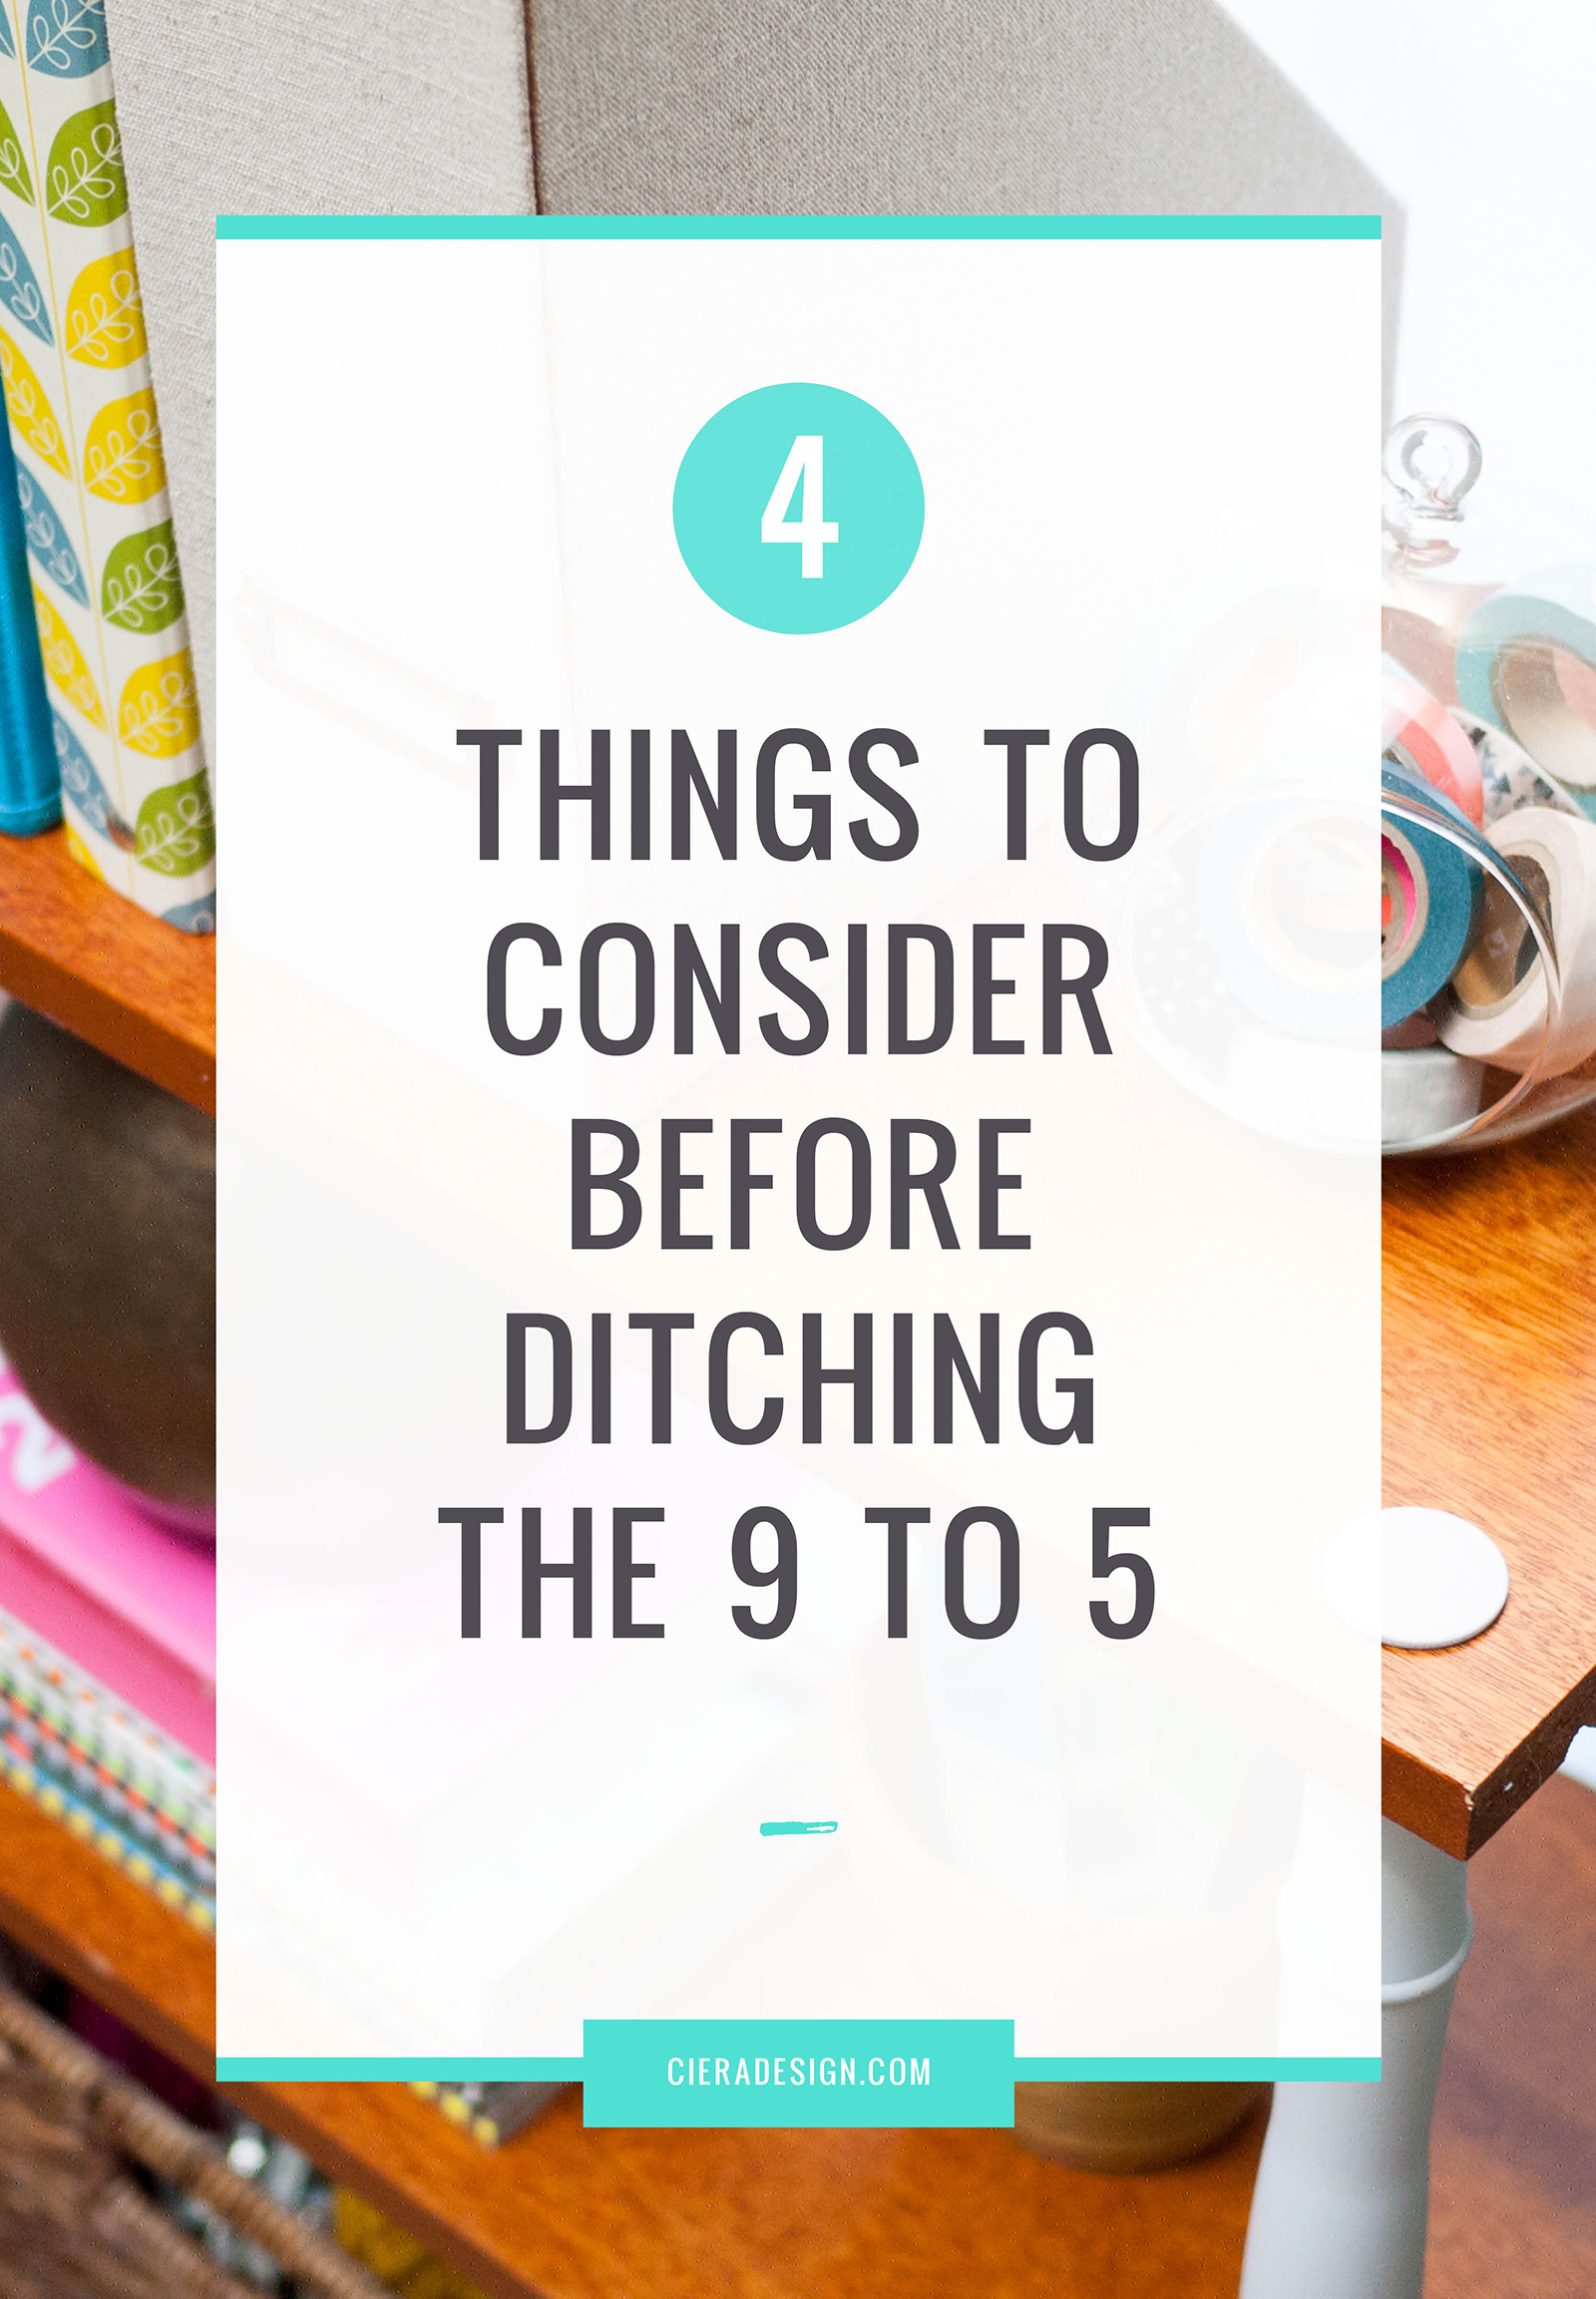 That idea that's been germinating in your head is ready to be planted. You've finally reached your limit on what the world of a 9 to 5 office job can offer you and it's time you spread your wings and soared. We're digging into the top 4 things to consider and prepare for before ditching the 9 to 5.